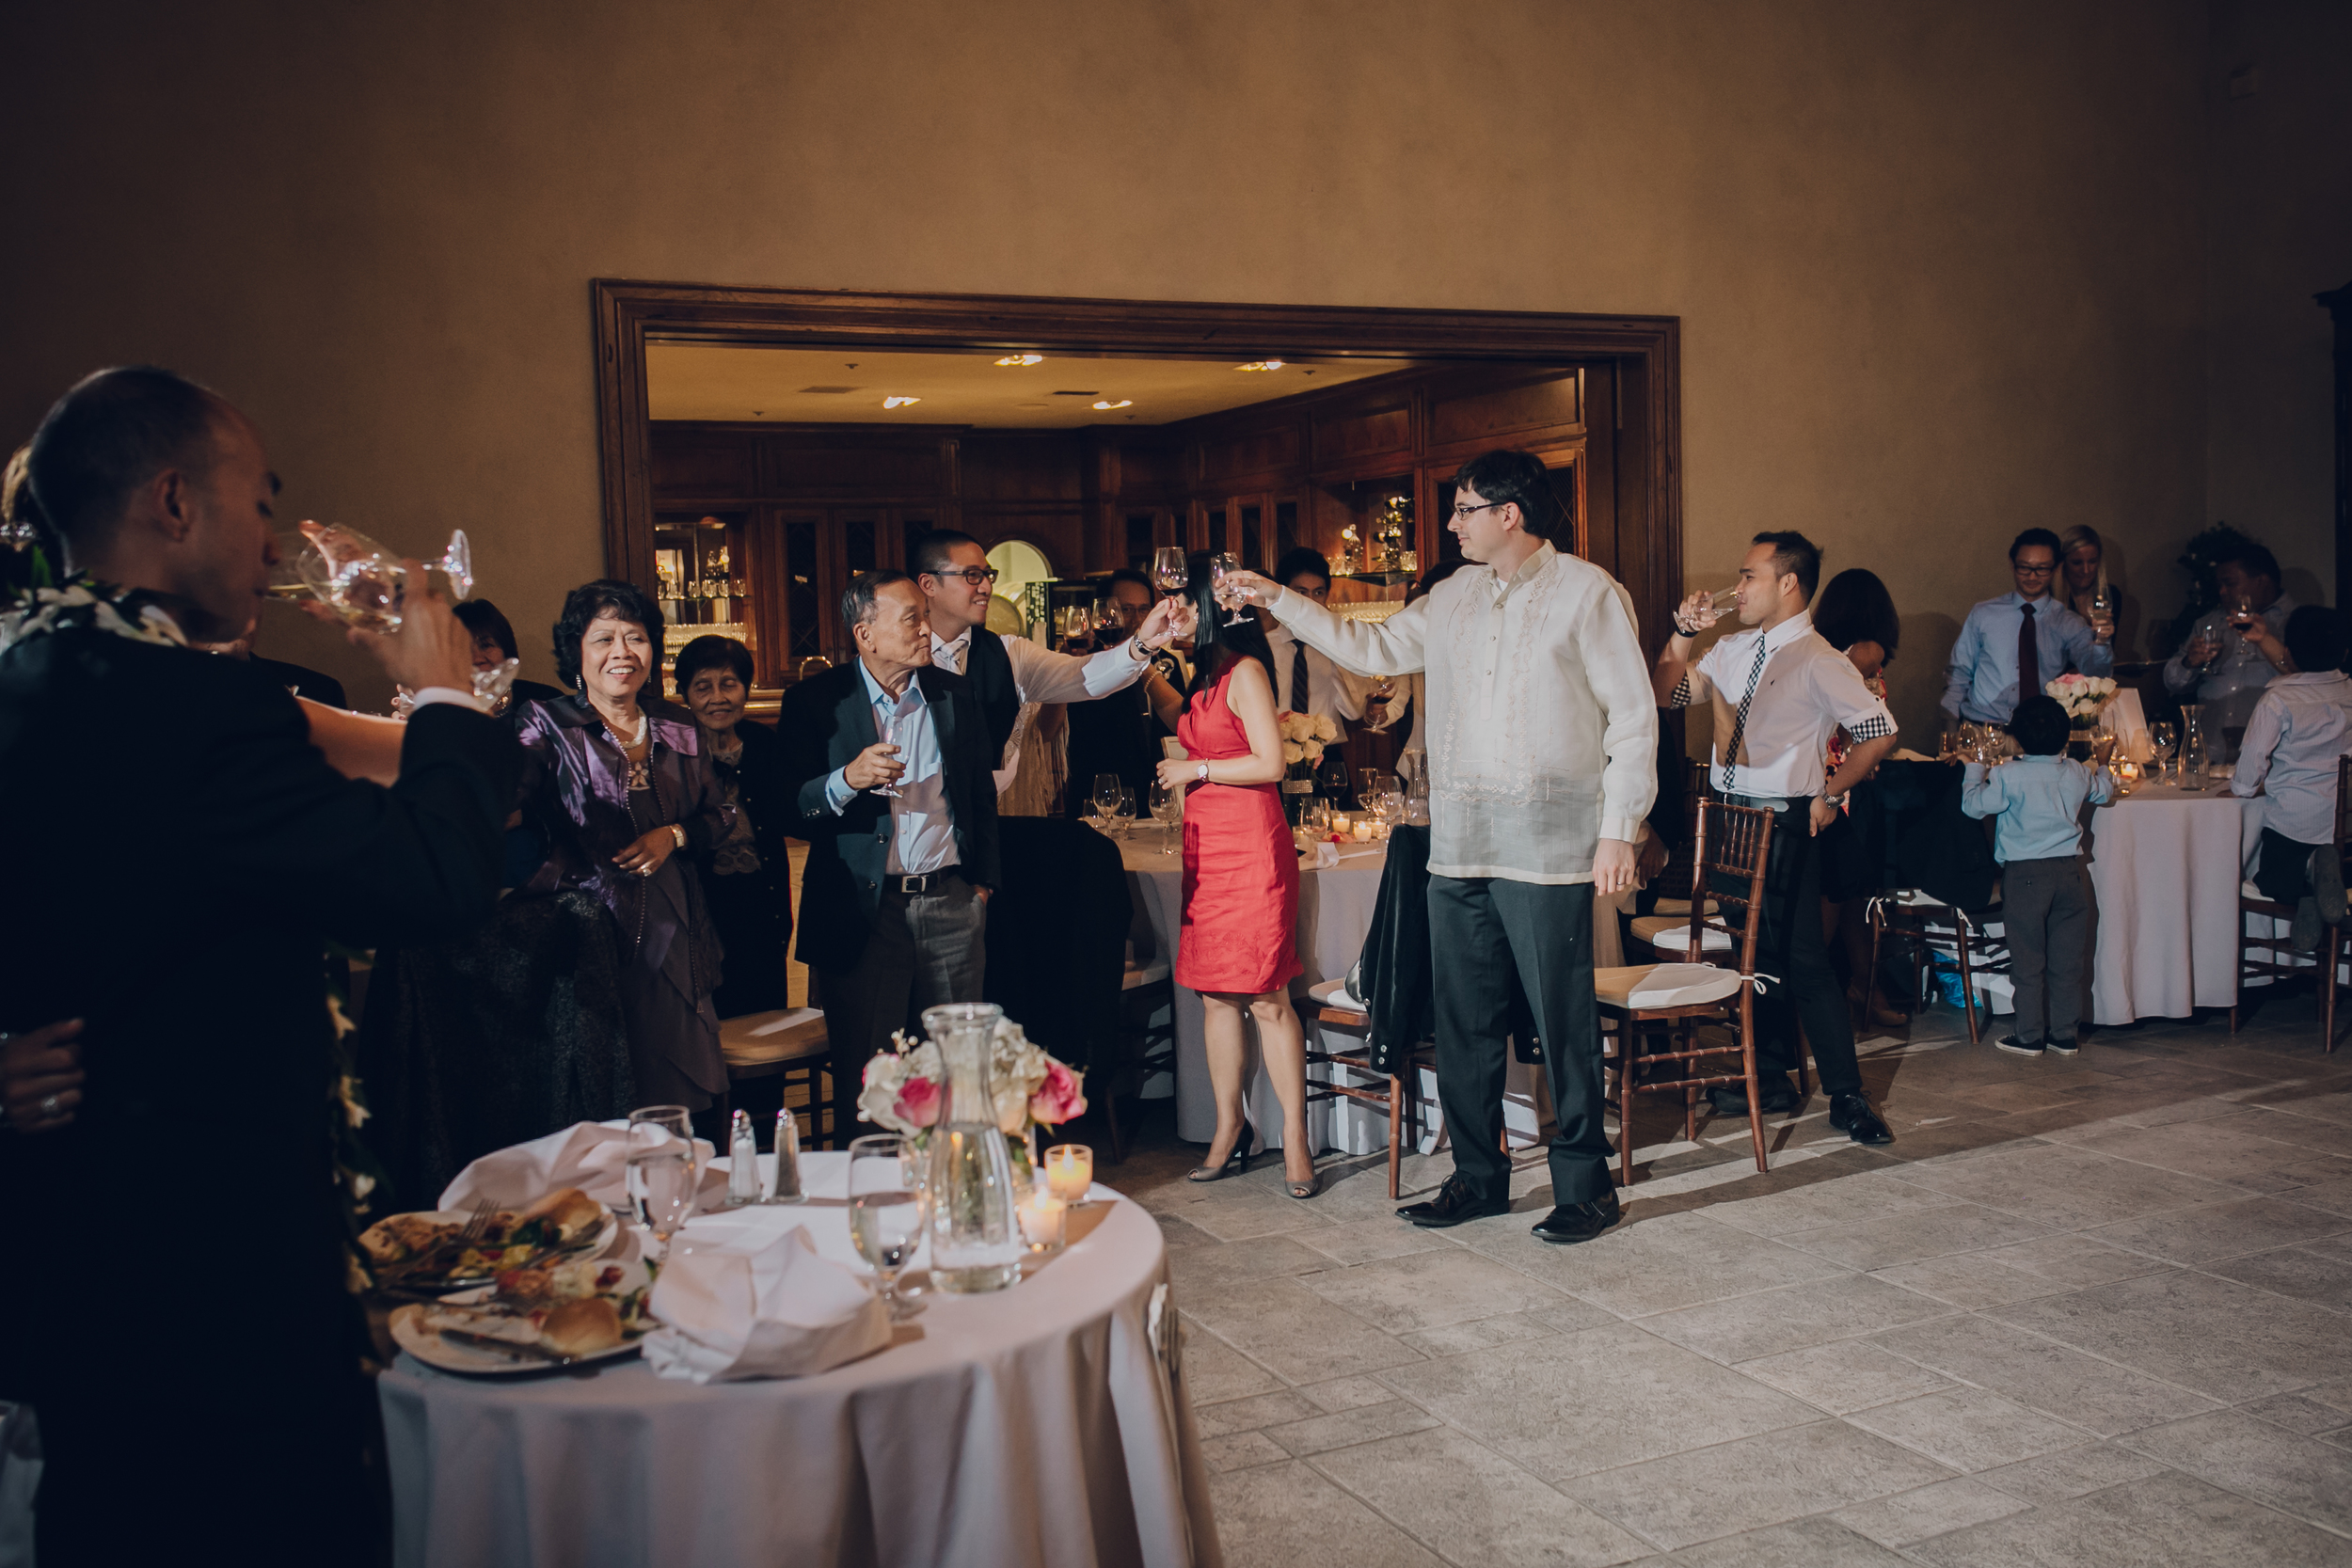 Shiela + Lester's Wedding 9-30-15 1073.jpg